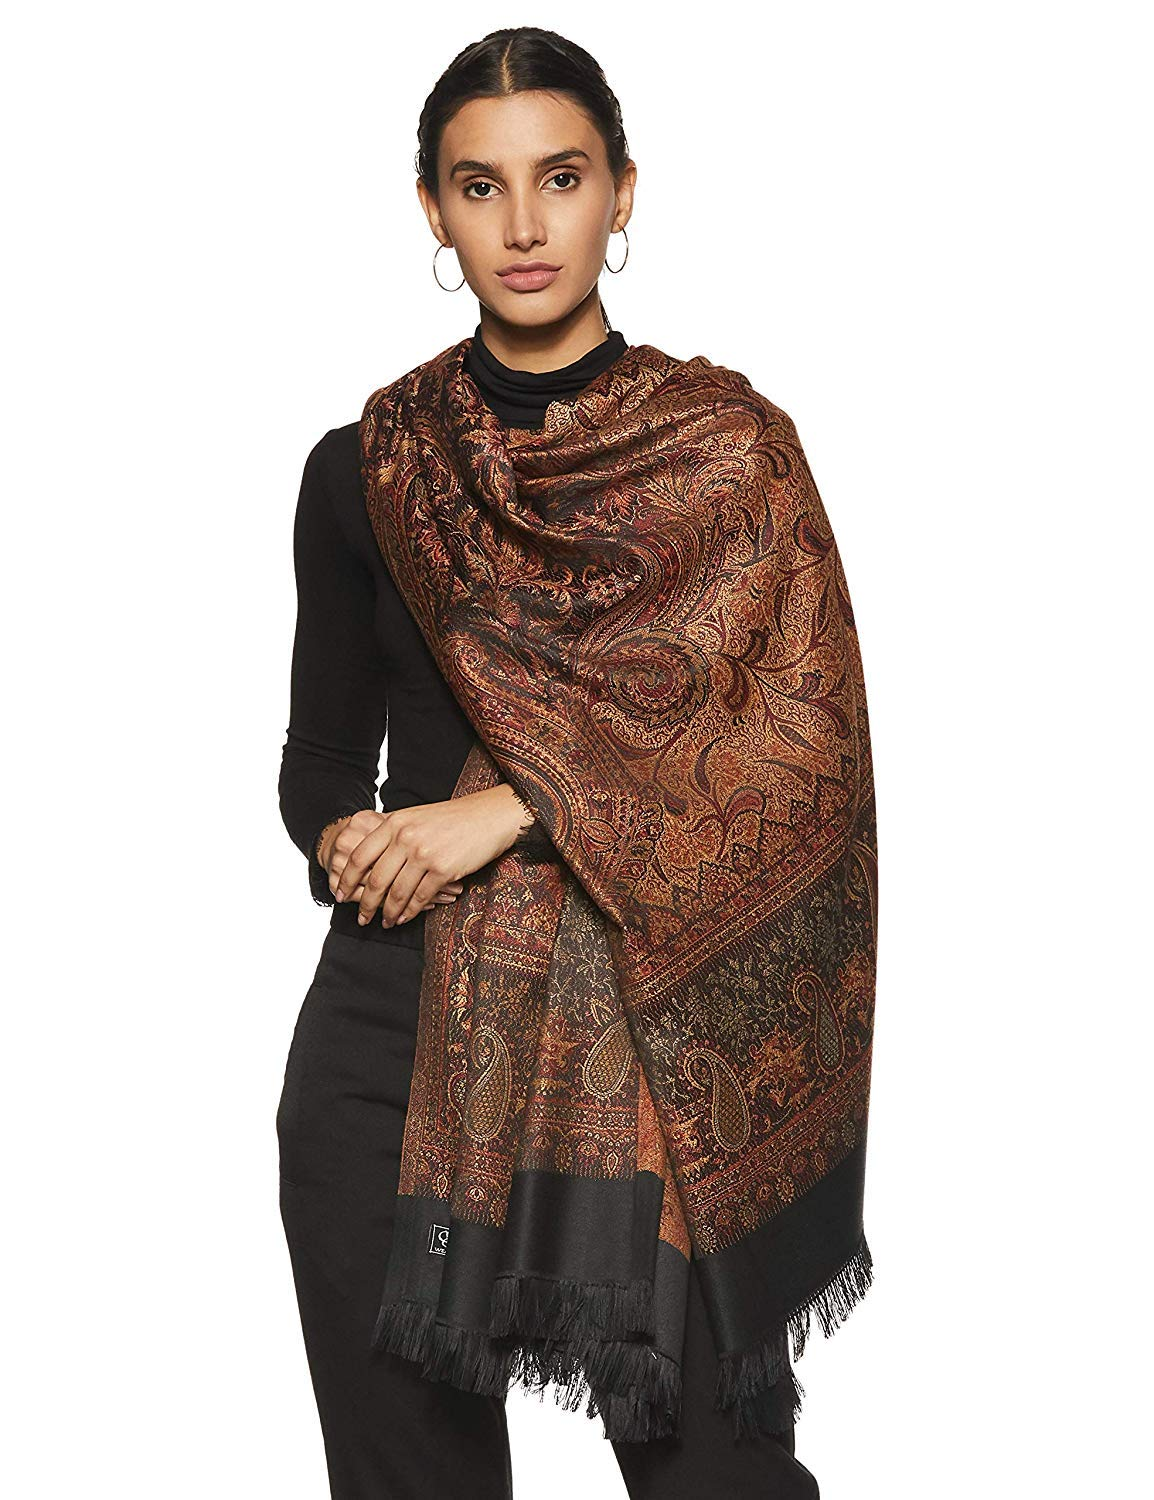 "Weavers Villa Women's Pashmina Wool Blend Indian Handicraft Woven Shawls Scarf Wraps [Large Size: 40"" X 80""]"